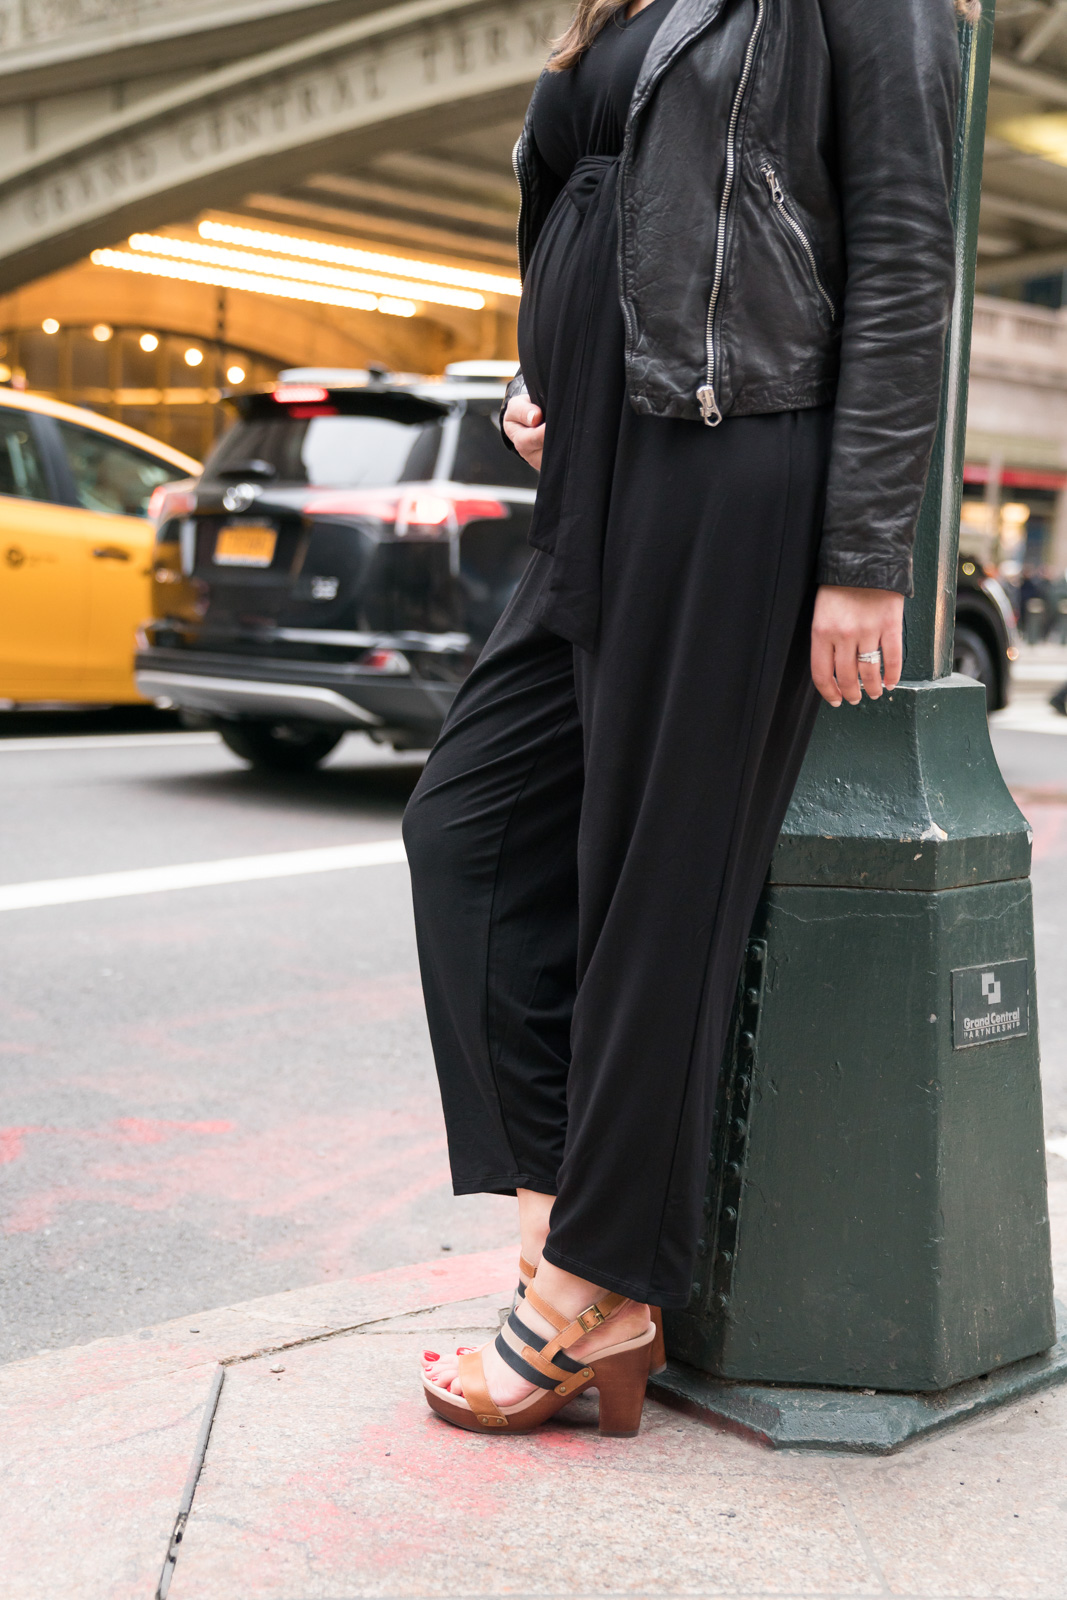 maternity jumpsuit outfit - how to wear jumpsuit pregnancy | | Read all about my NYC blogger trip experience with Jambu Shoes + Good Housekeeping at bylaurenm.com!